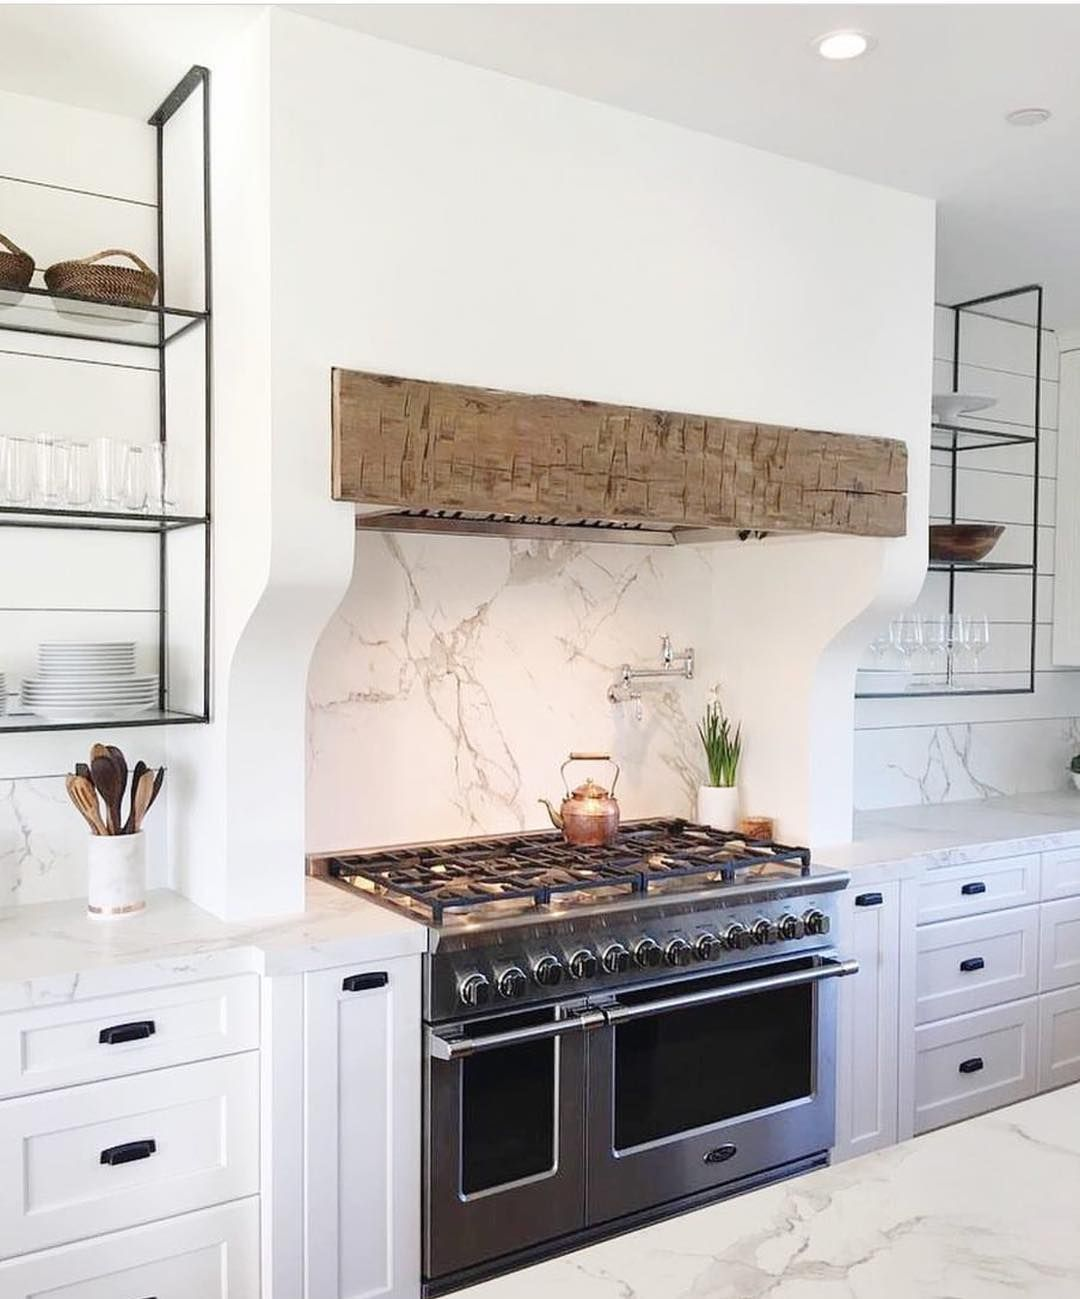 Gorgeous kitchen but the tiny space on either side of the stove is